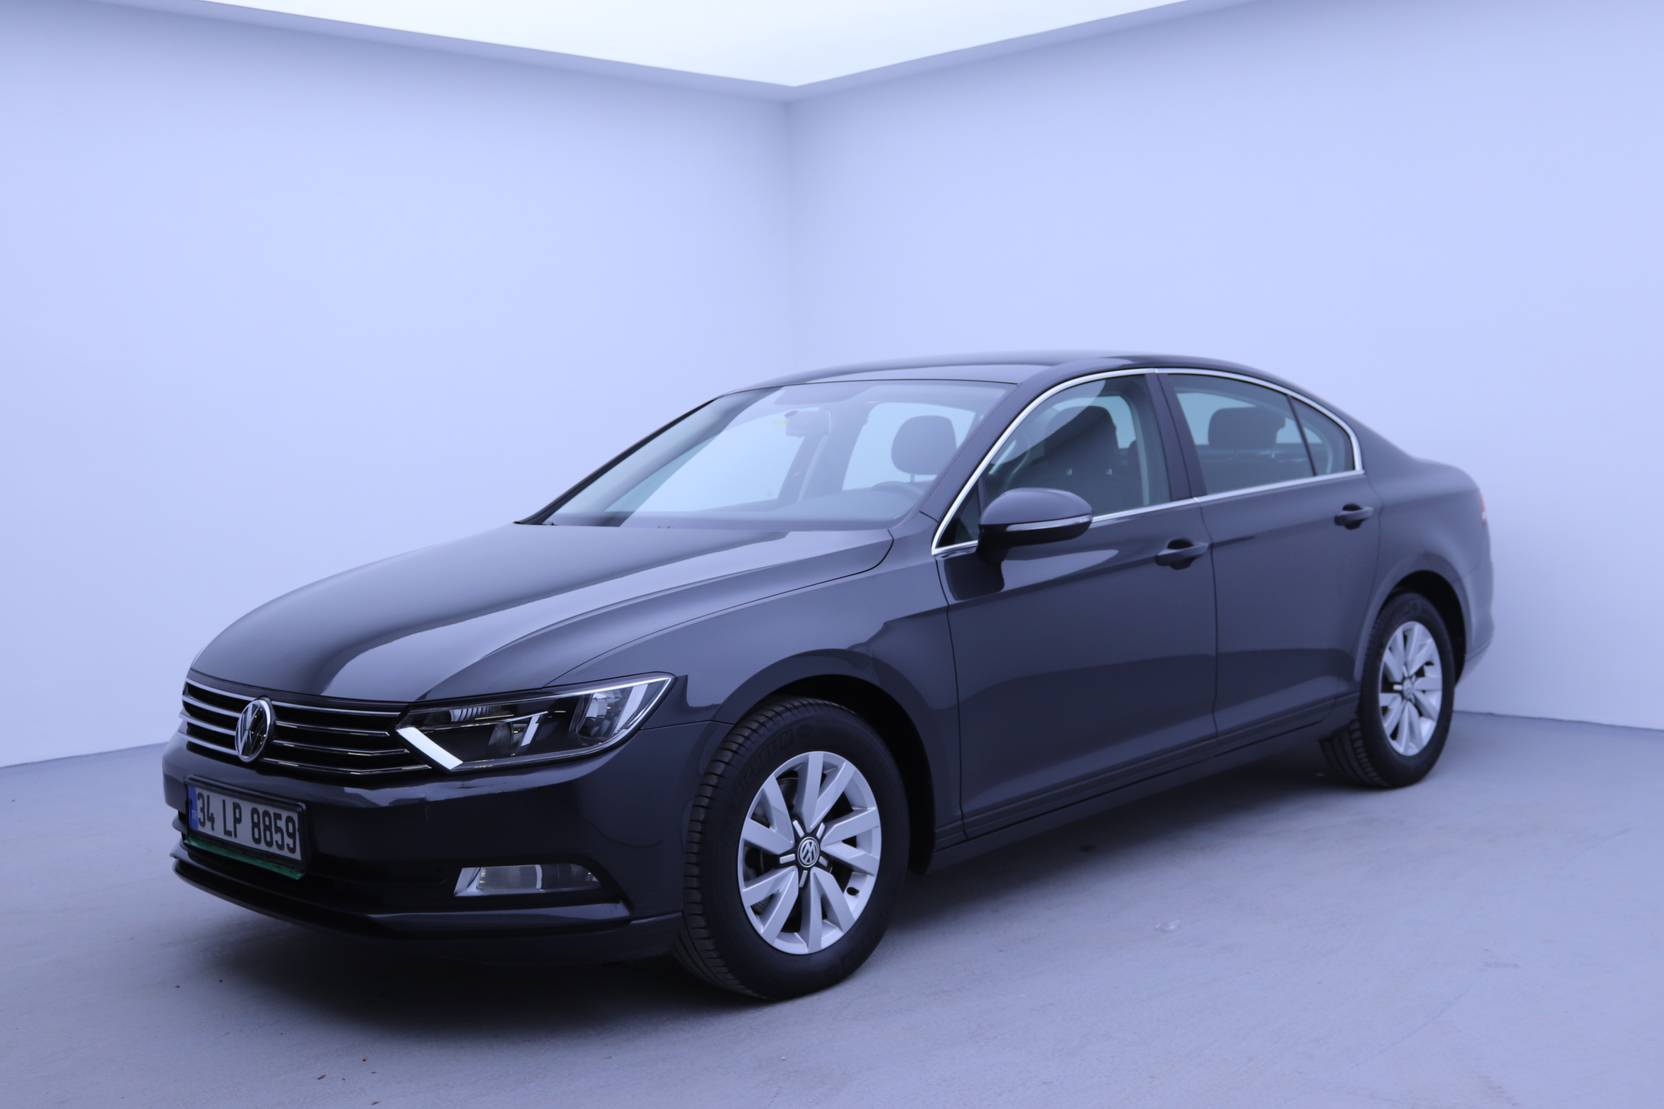 Volkswagen Passat 1.6 TDI (BlueMotion Technology) DSG, Trendline detail1